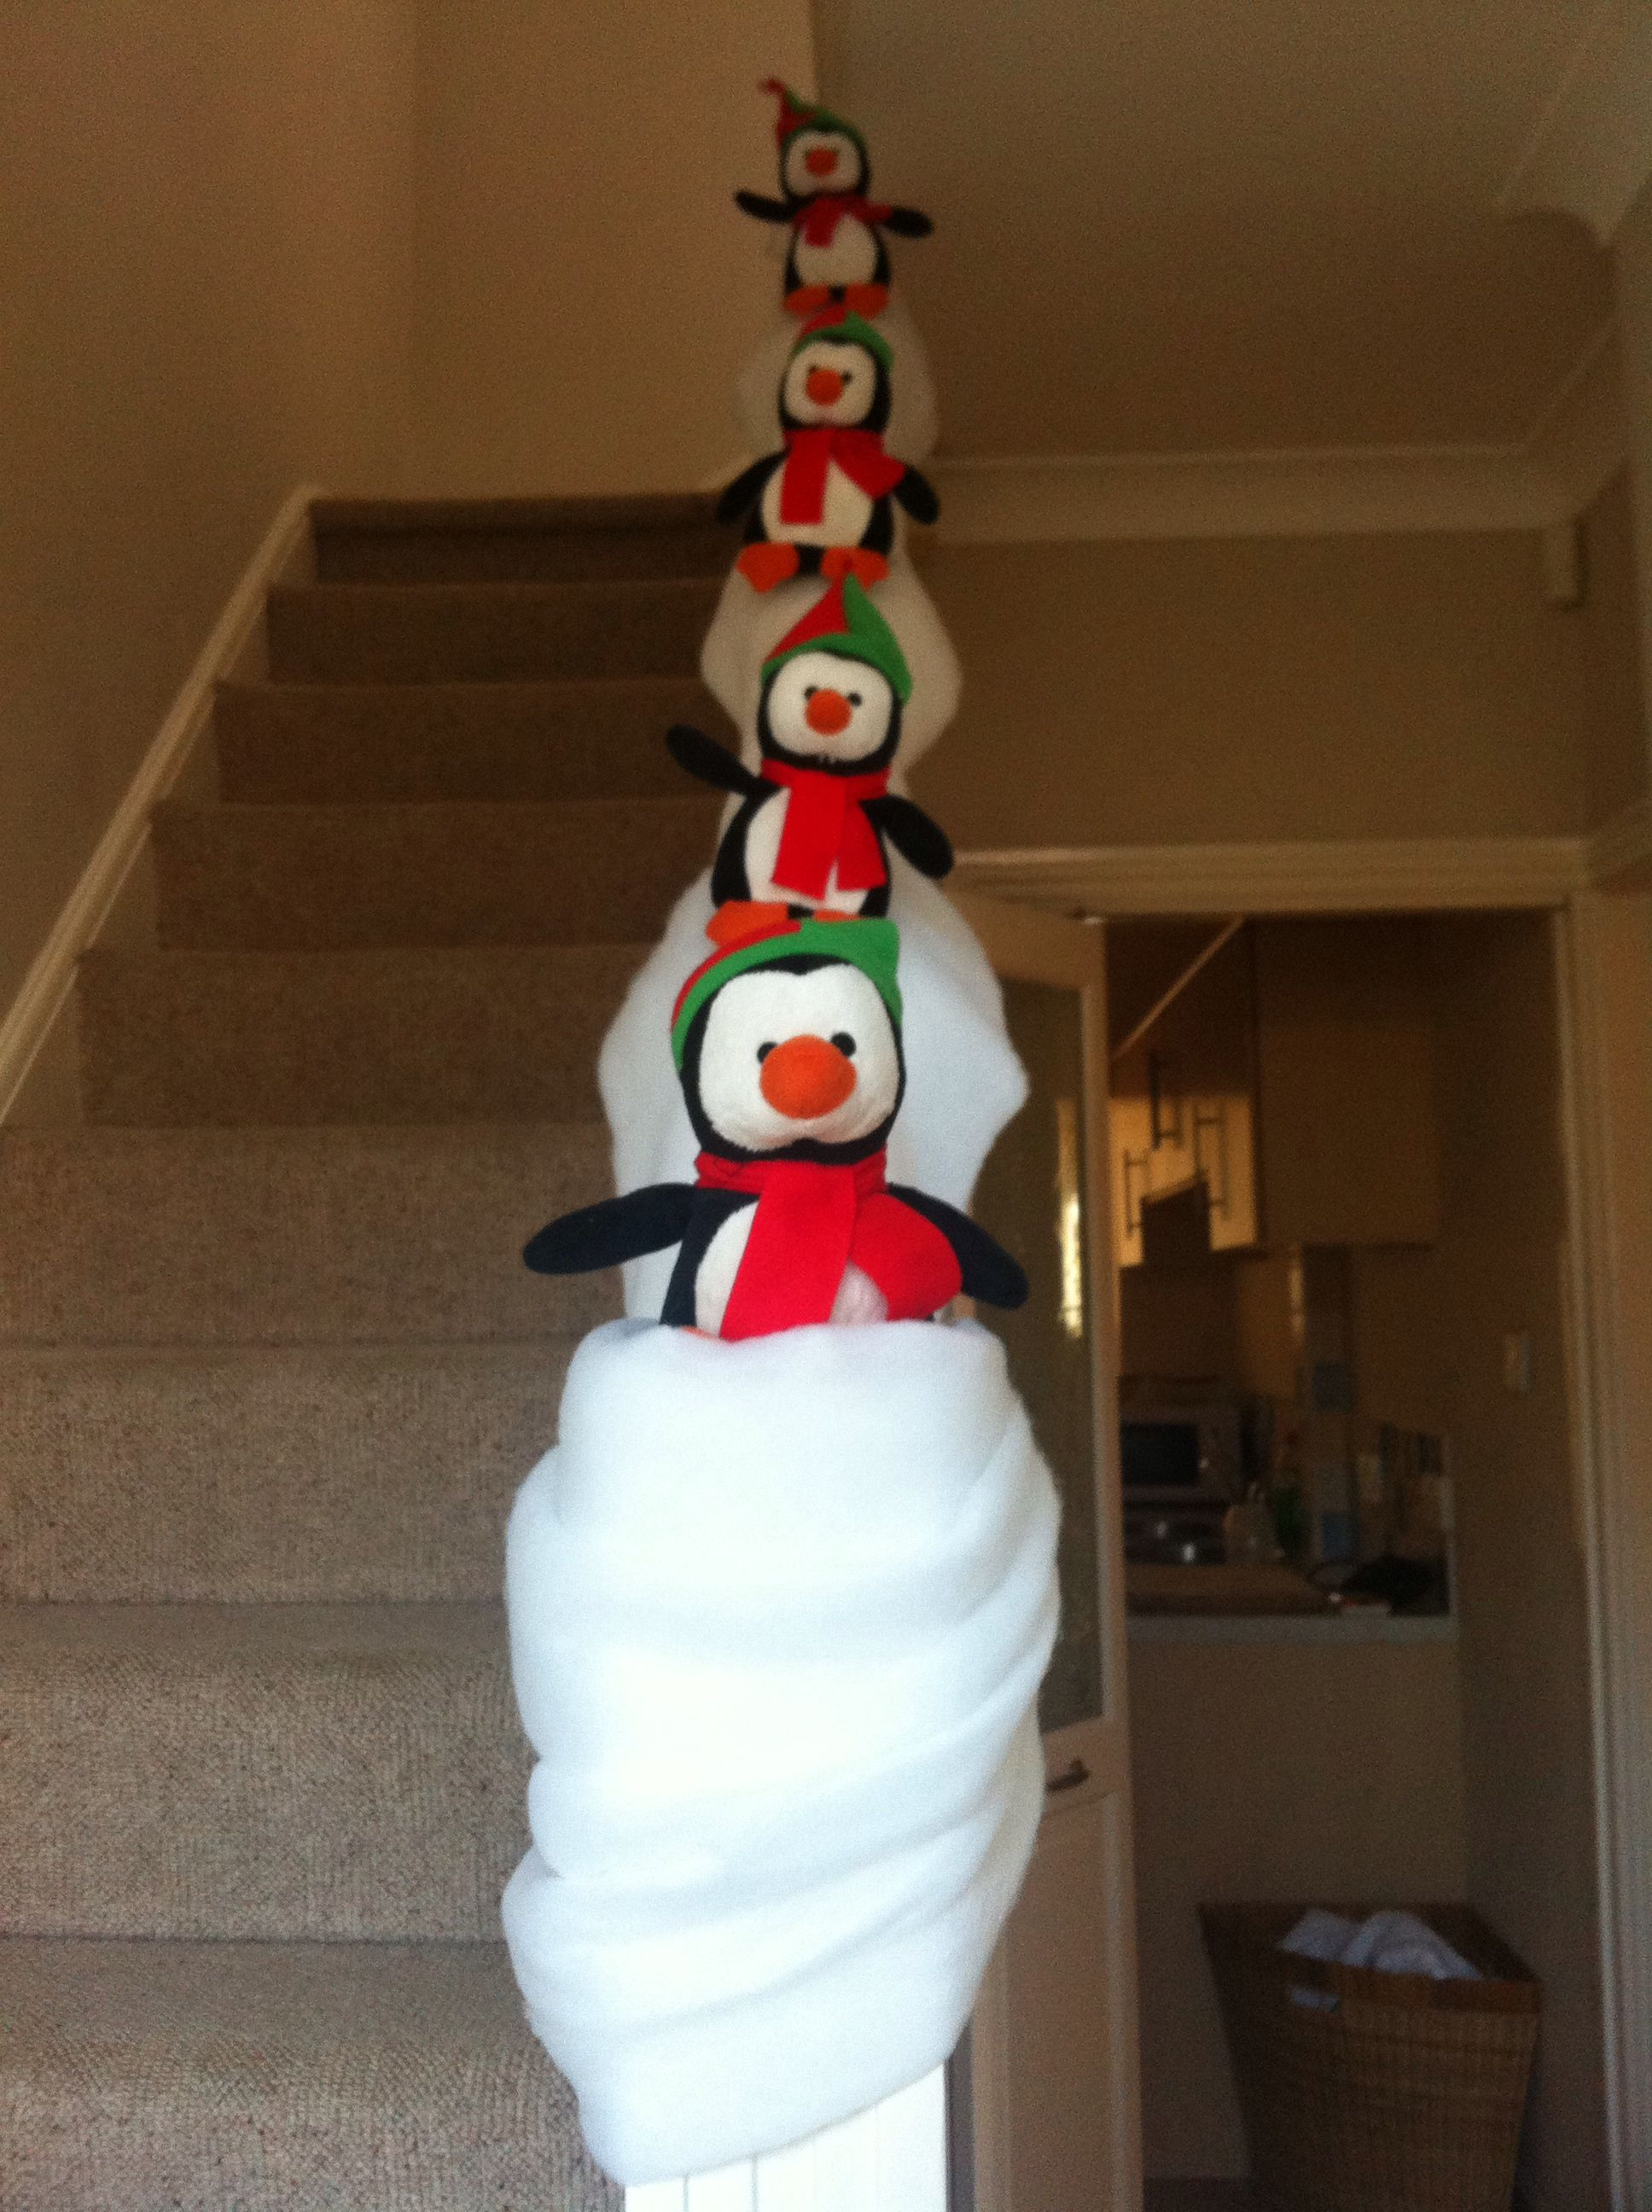 Penguins having a blast / decoration / Christmas / stairs ...